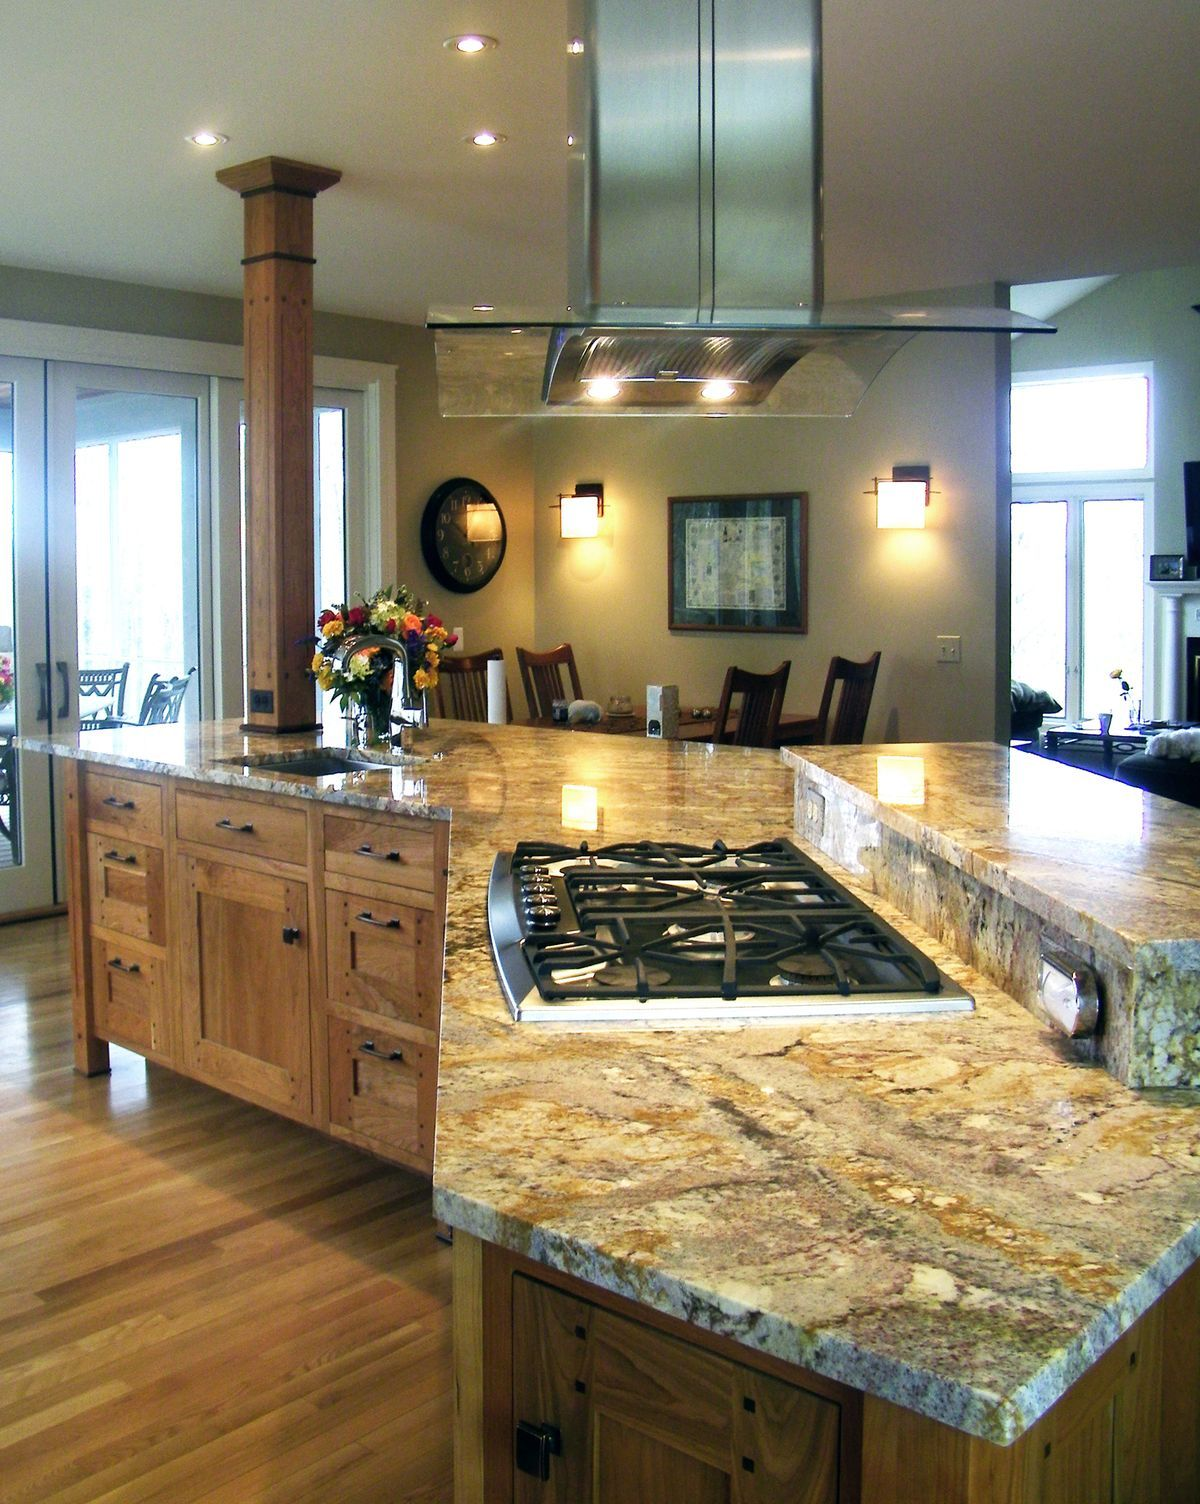 Kitchen Design Ideas With Stove In Island